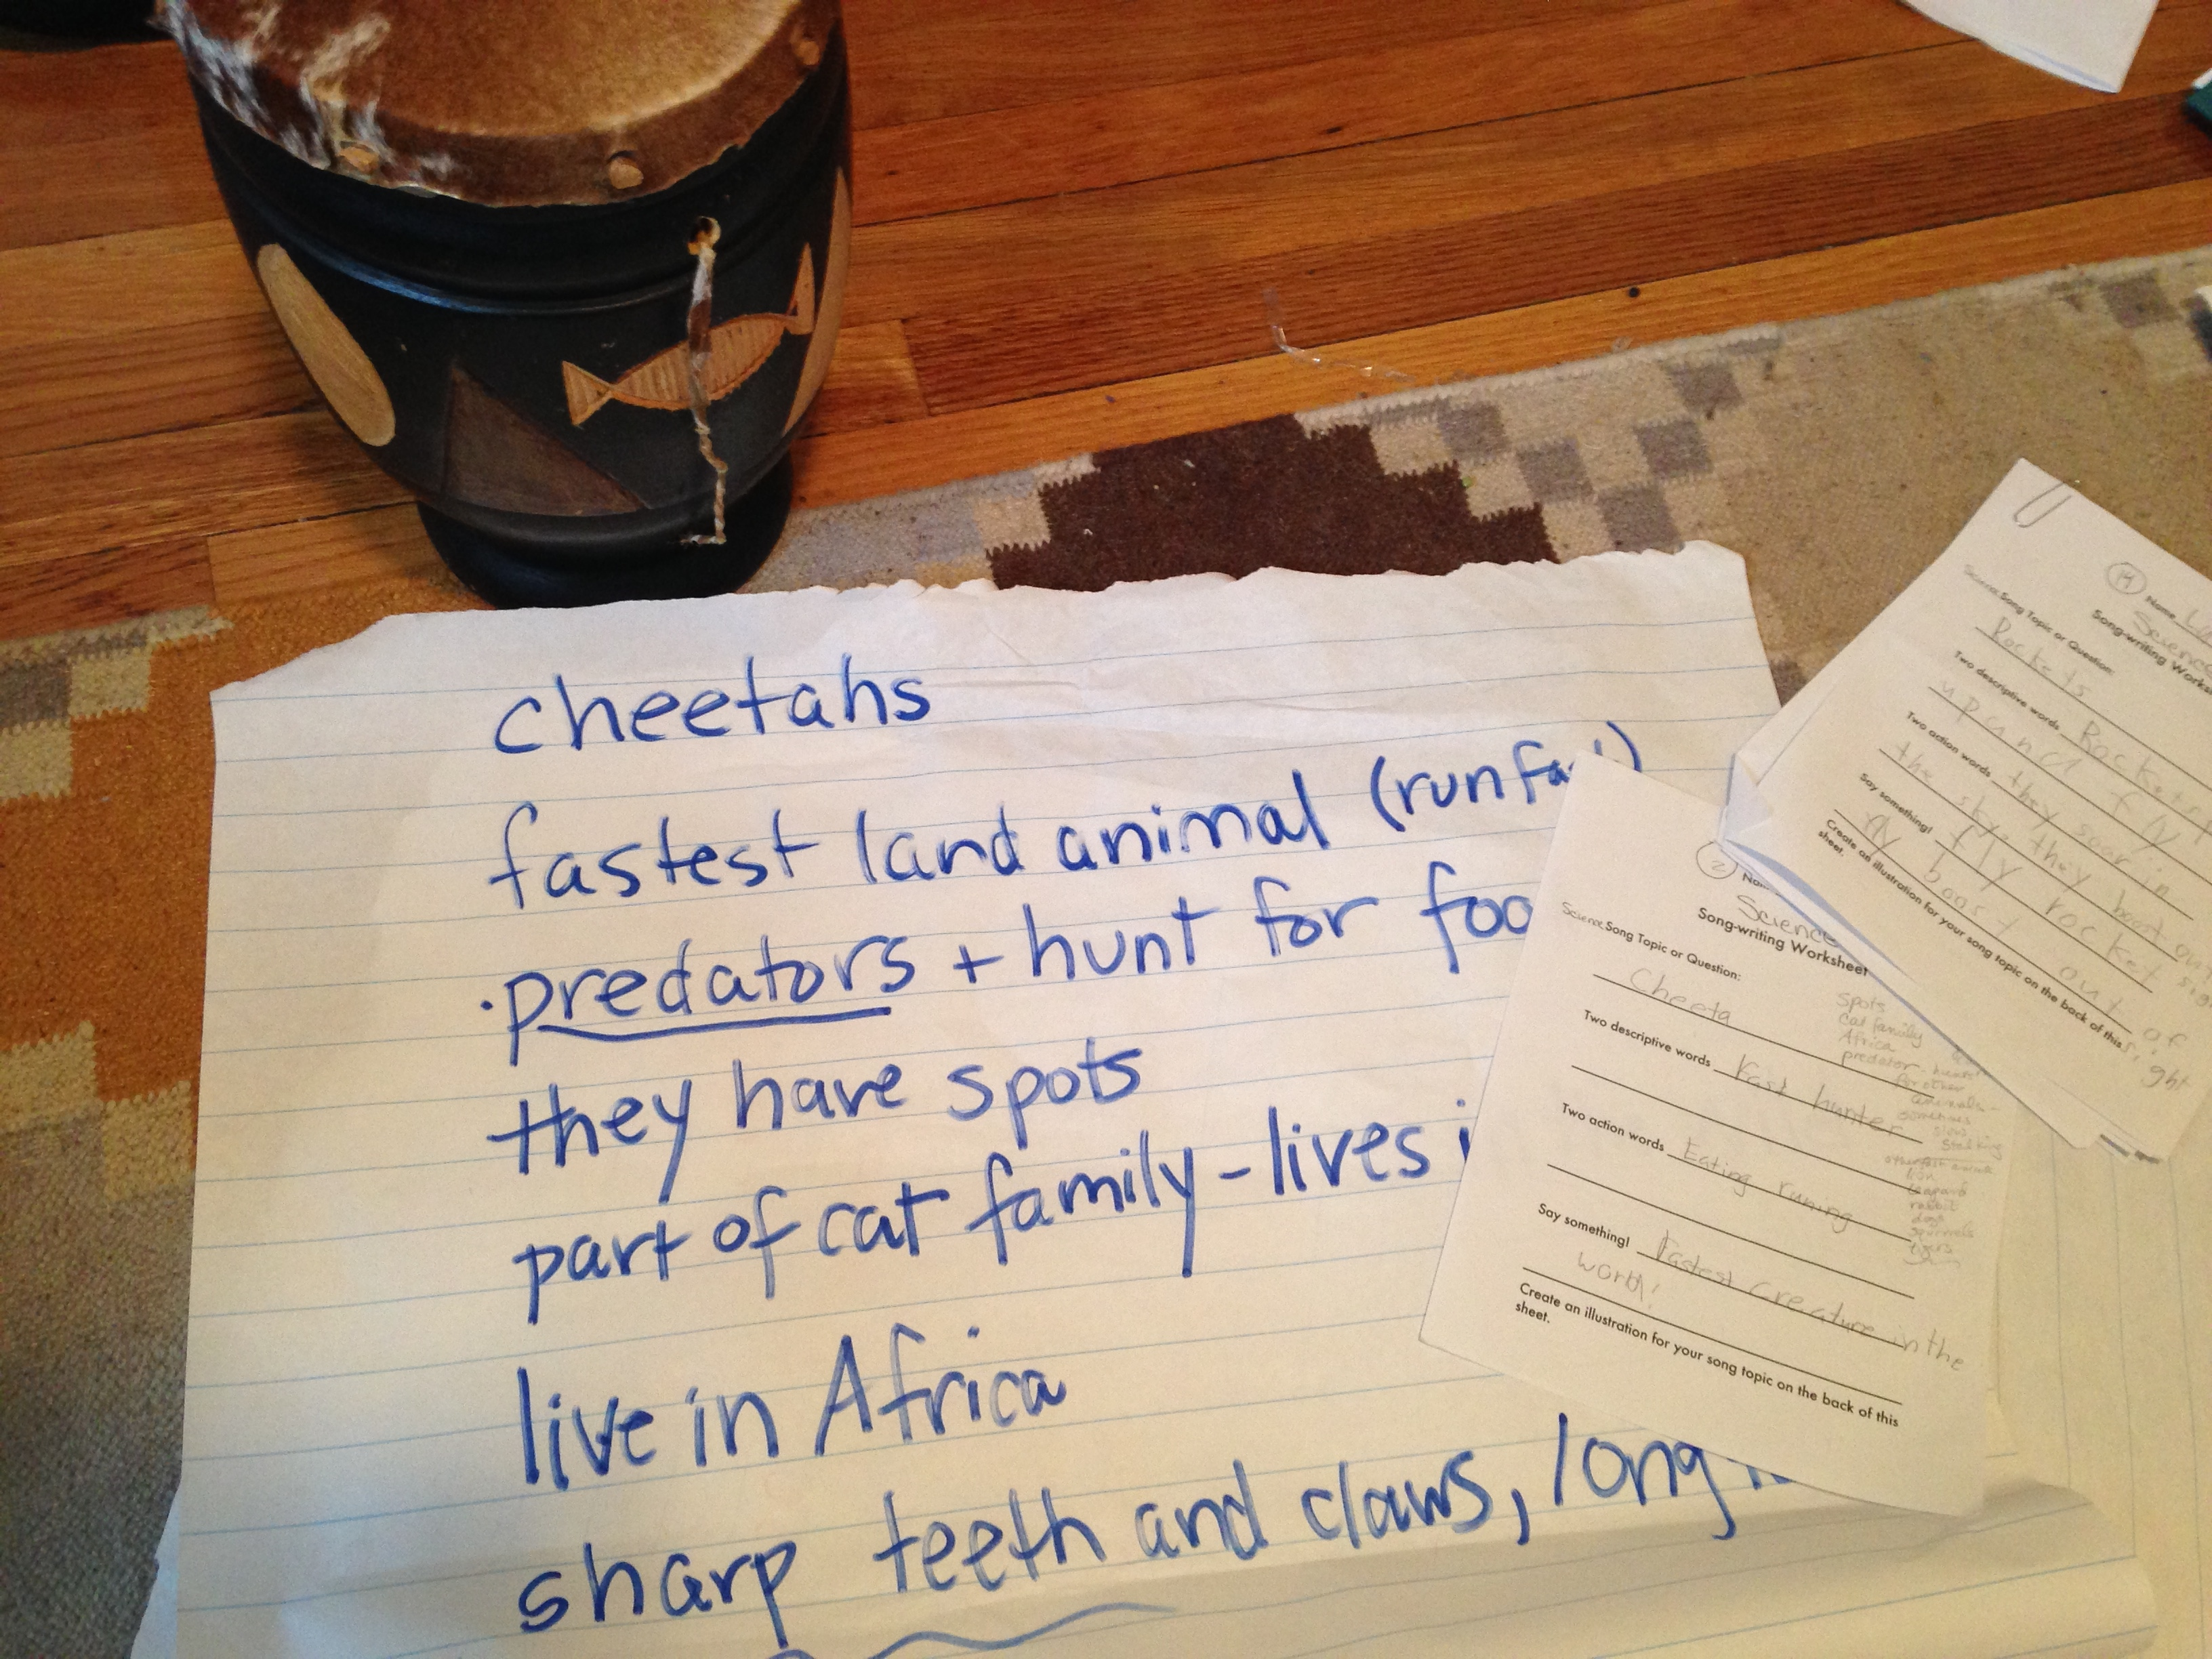 songwriting antelope dance class brainstorming sheet ideas about cheetahs